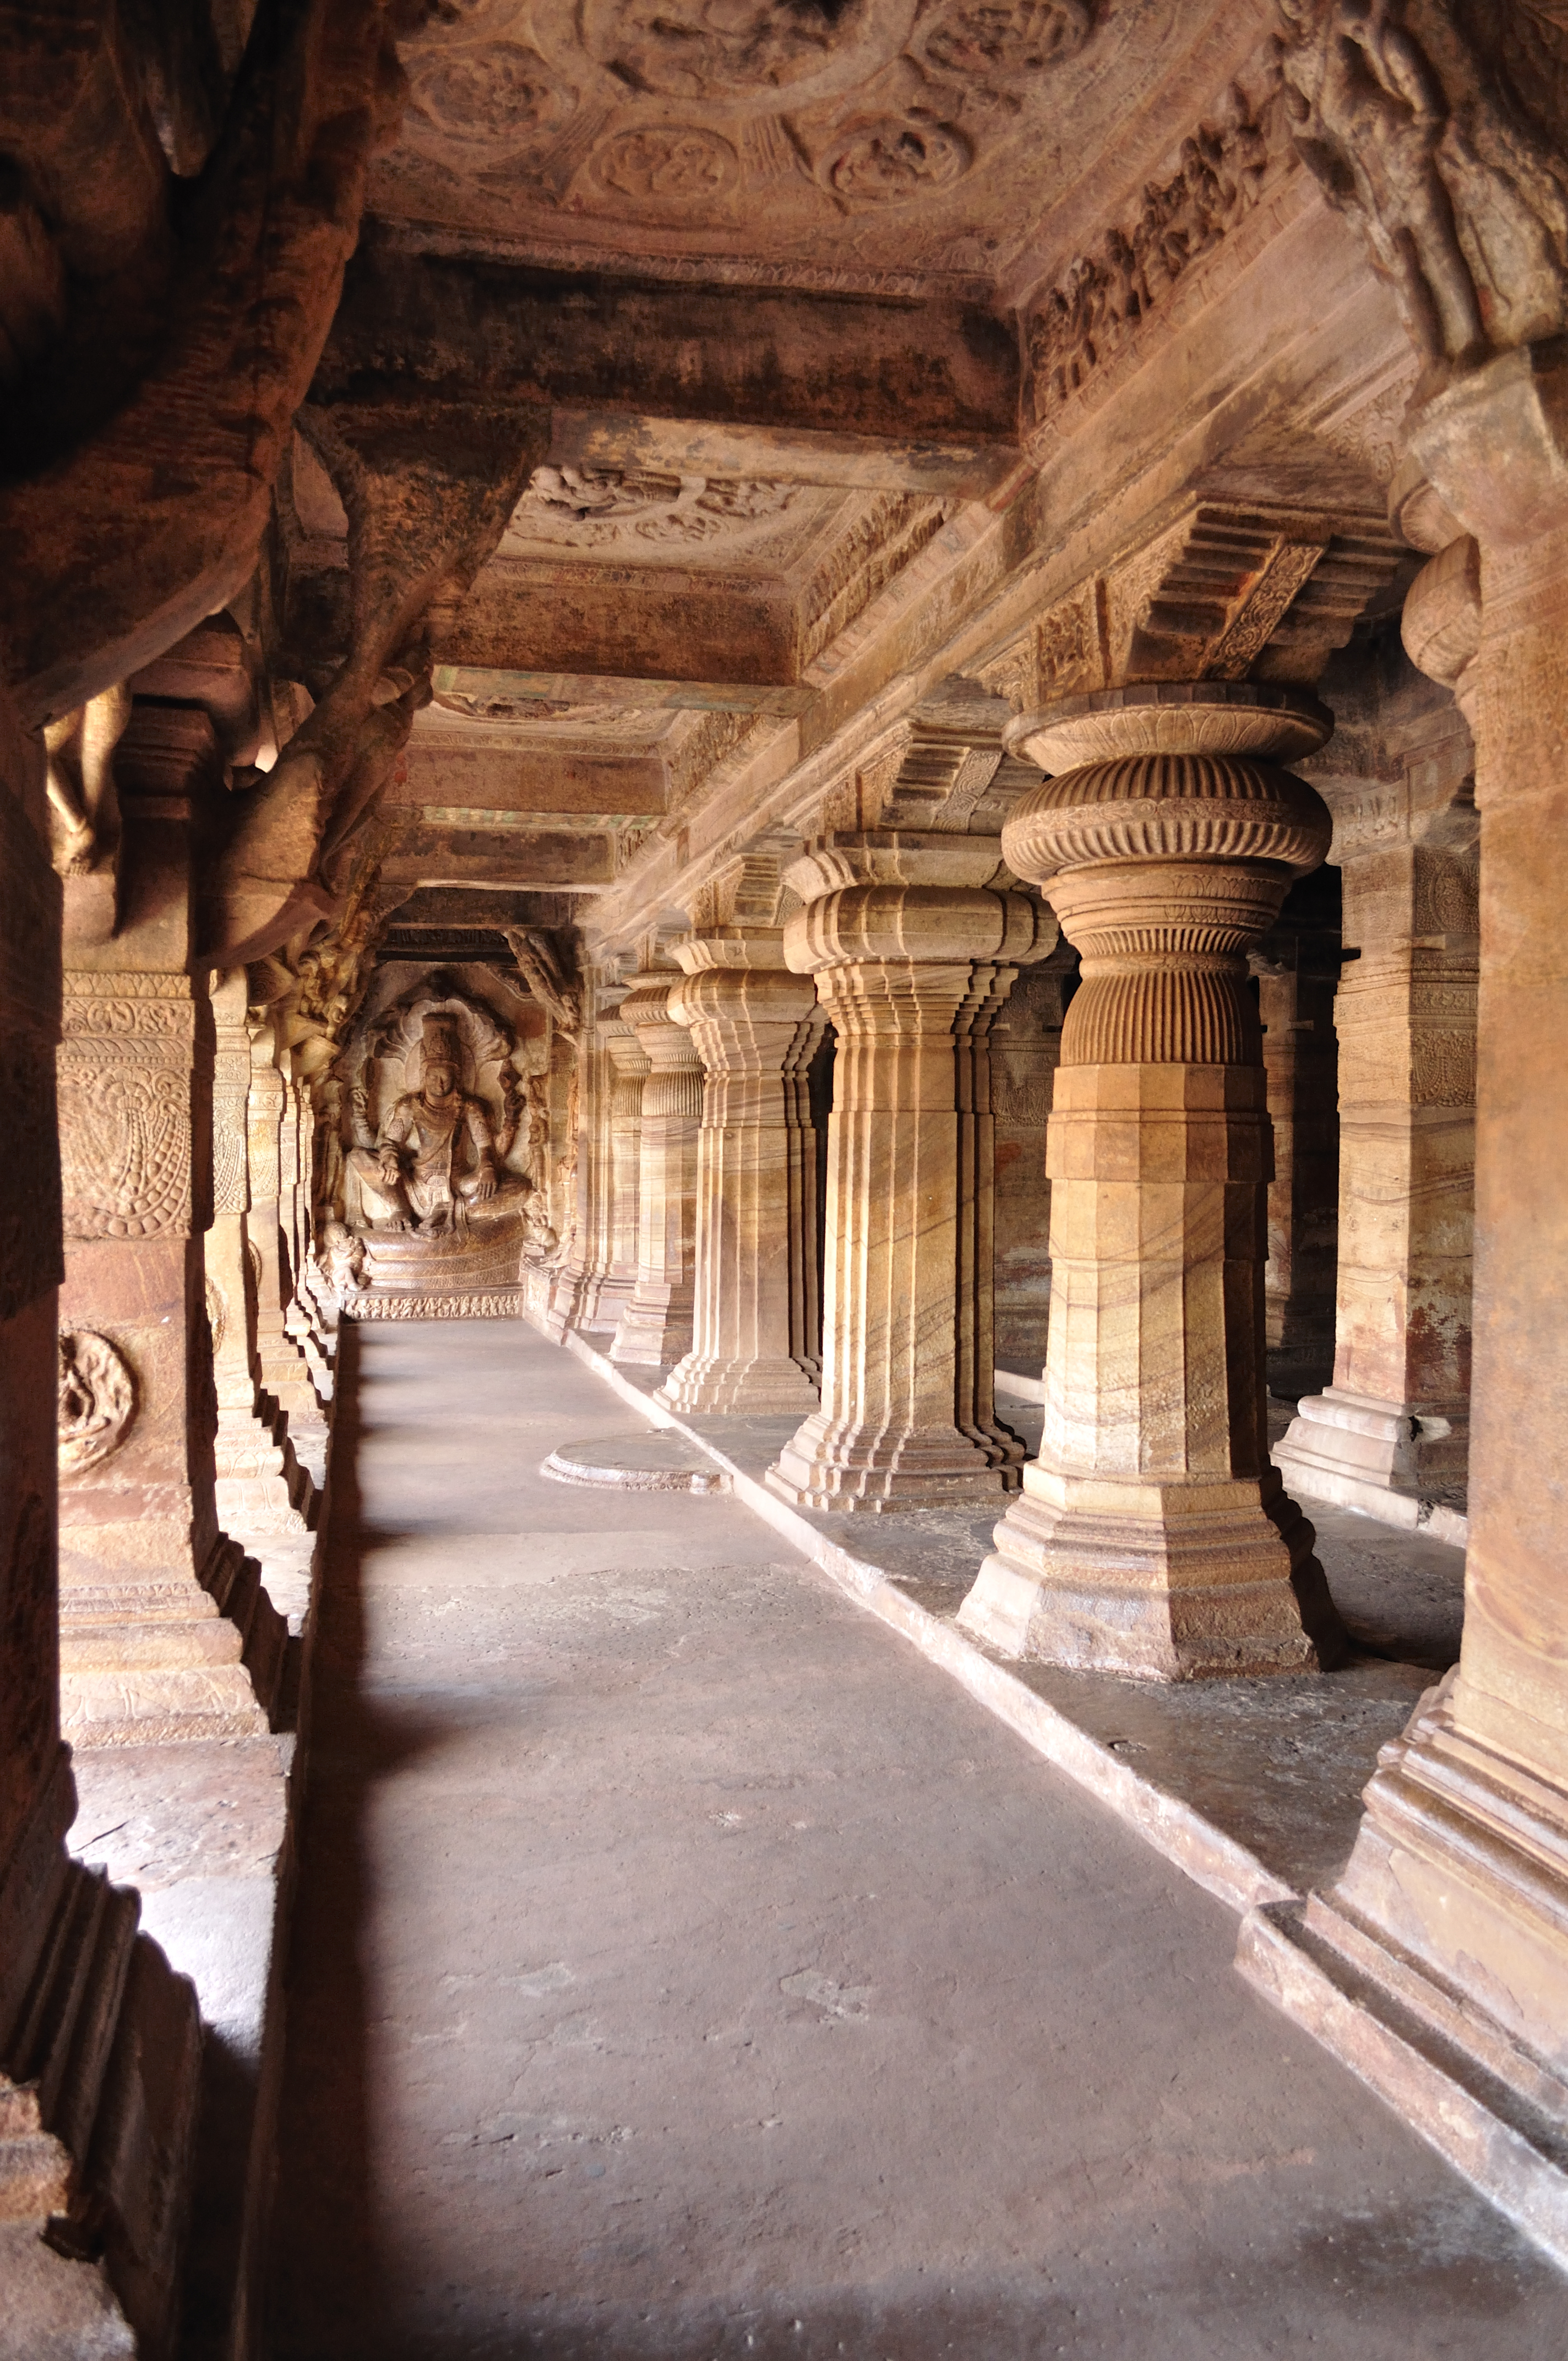 badami caves india Badami caves 1 badami caves, badami  caves along with the interiors and design of the caves the caves are visited by many people from india and abroad.